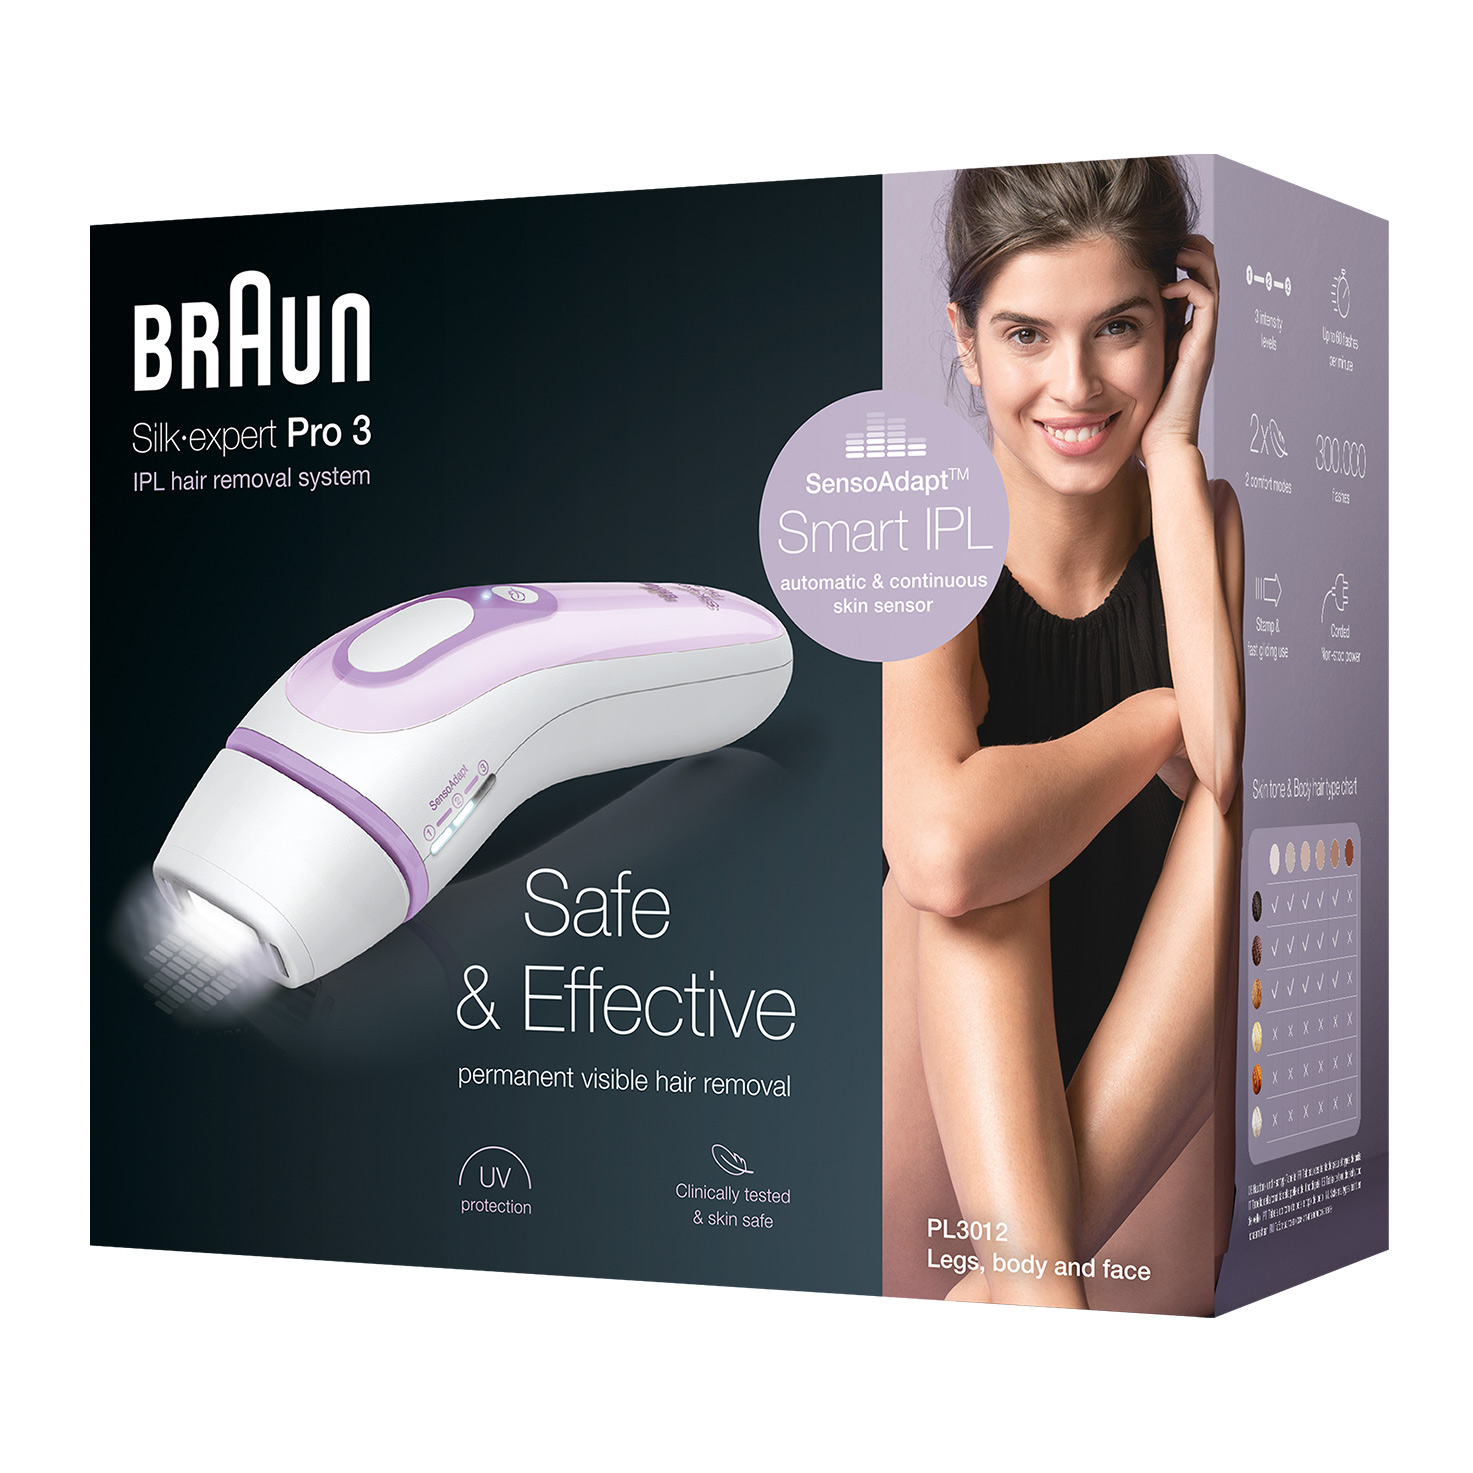 Braun Silk-expert Pro 3 PL3012 - Packaging